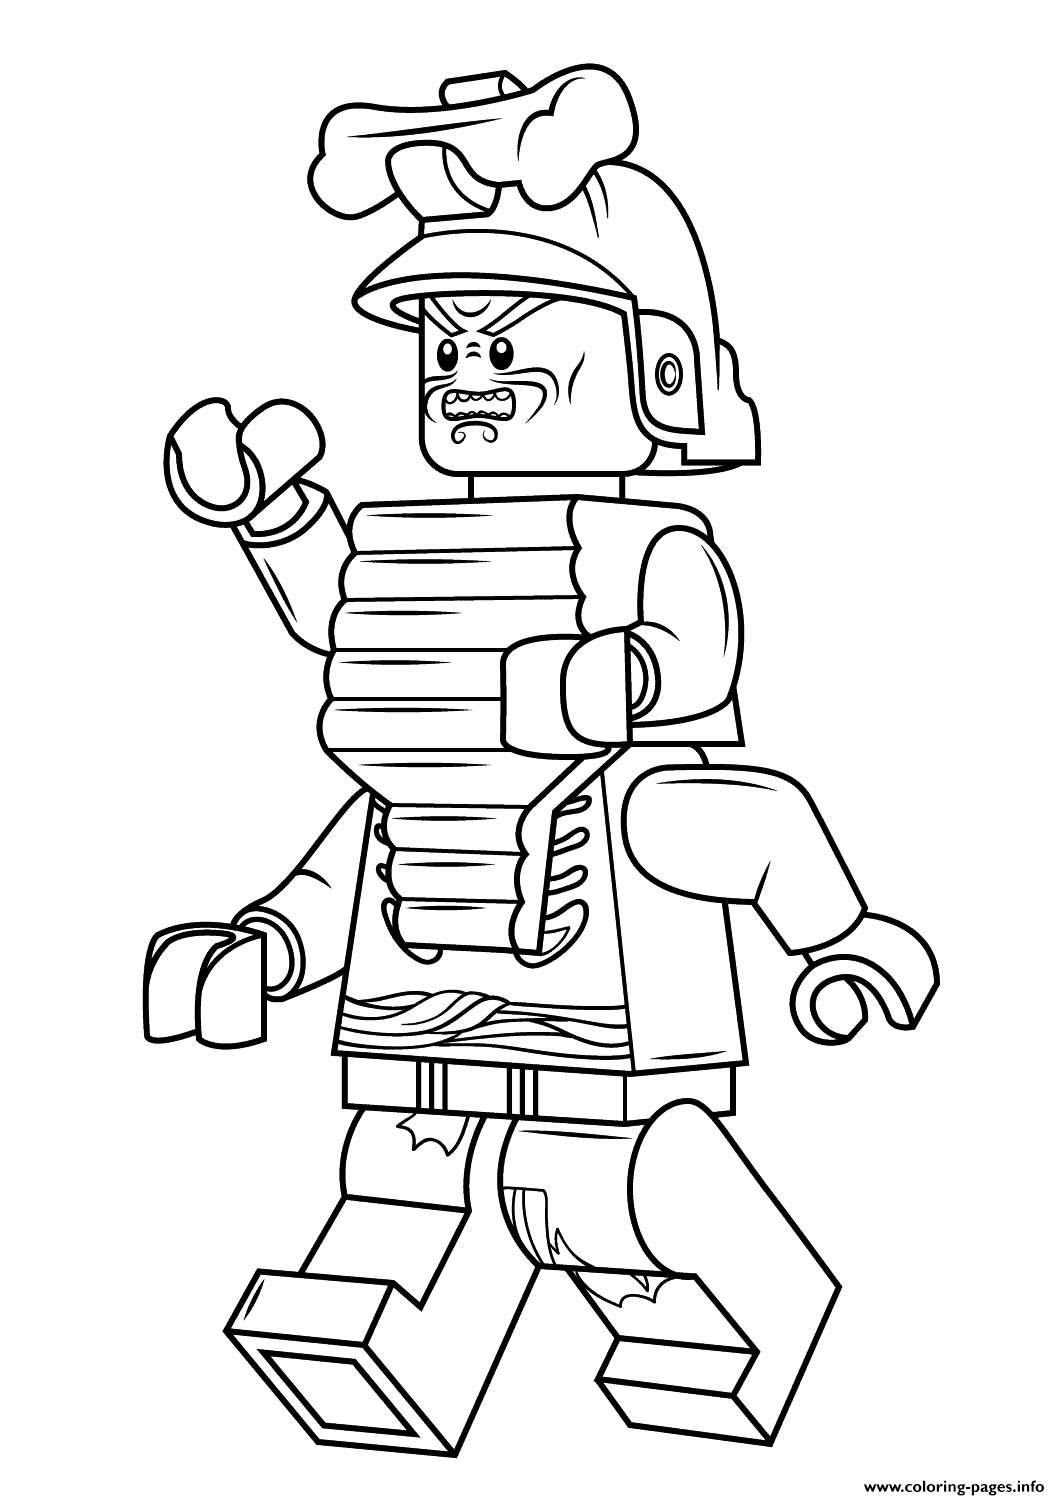 Print Lego Ninjago Lord Garmadon Coloring Pages Christmas